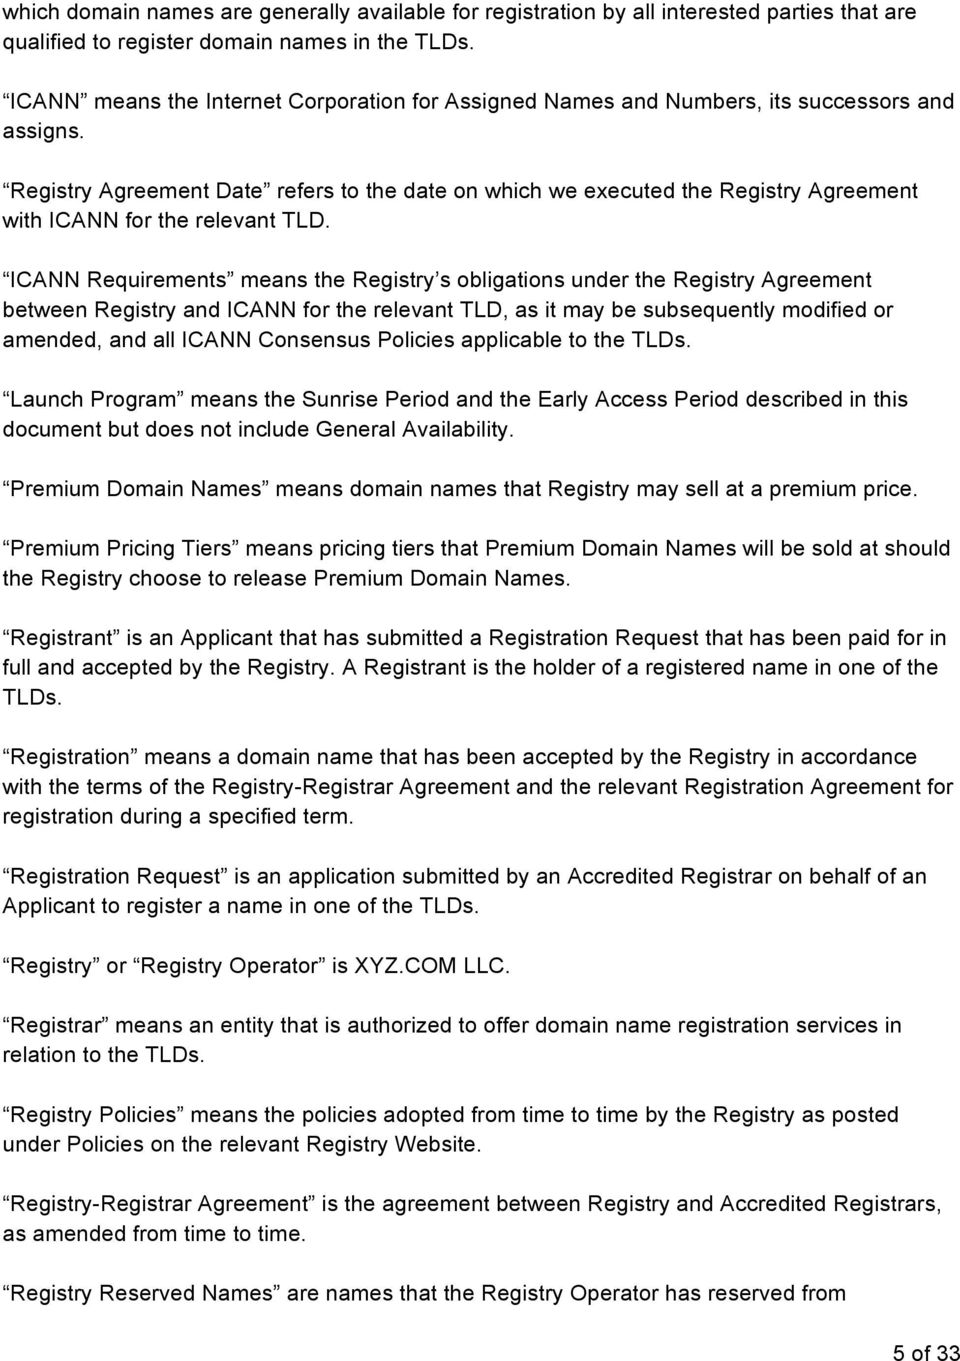 Registry Agreement Date refers to the date on which we executed the Registry Agreement with ICANN for the relevant TLD.